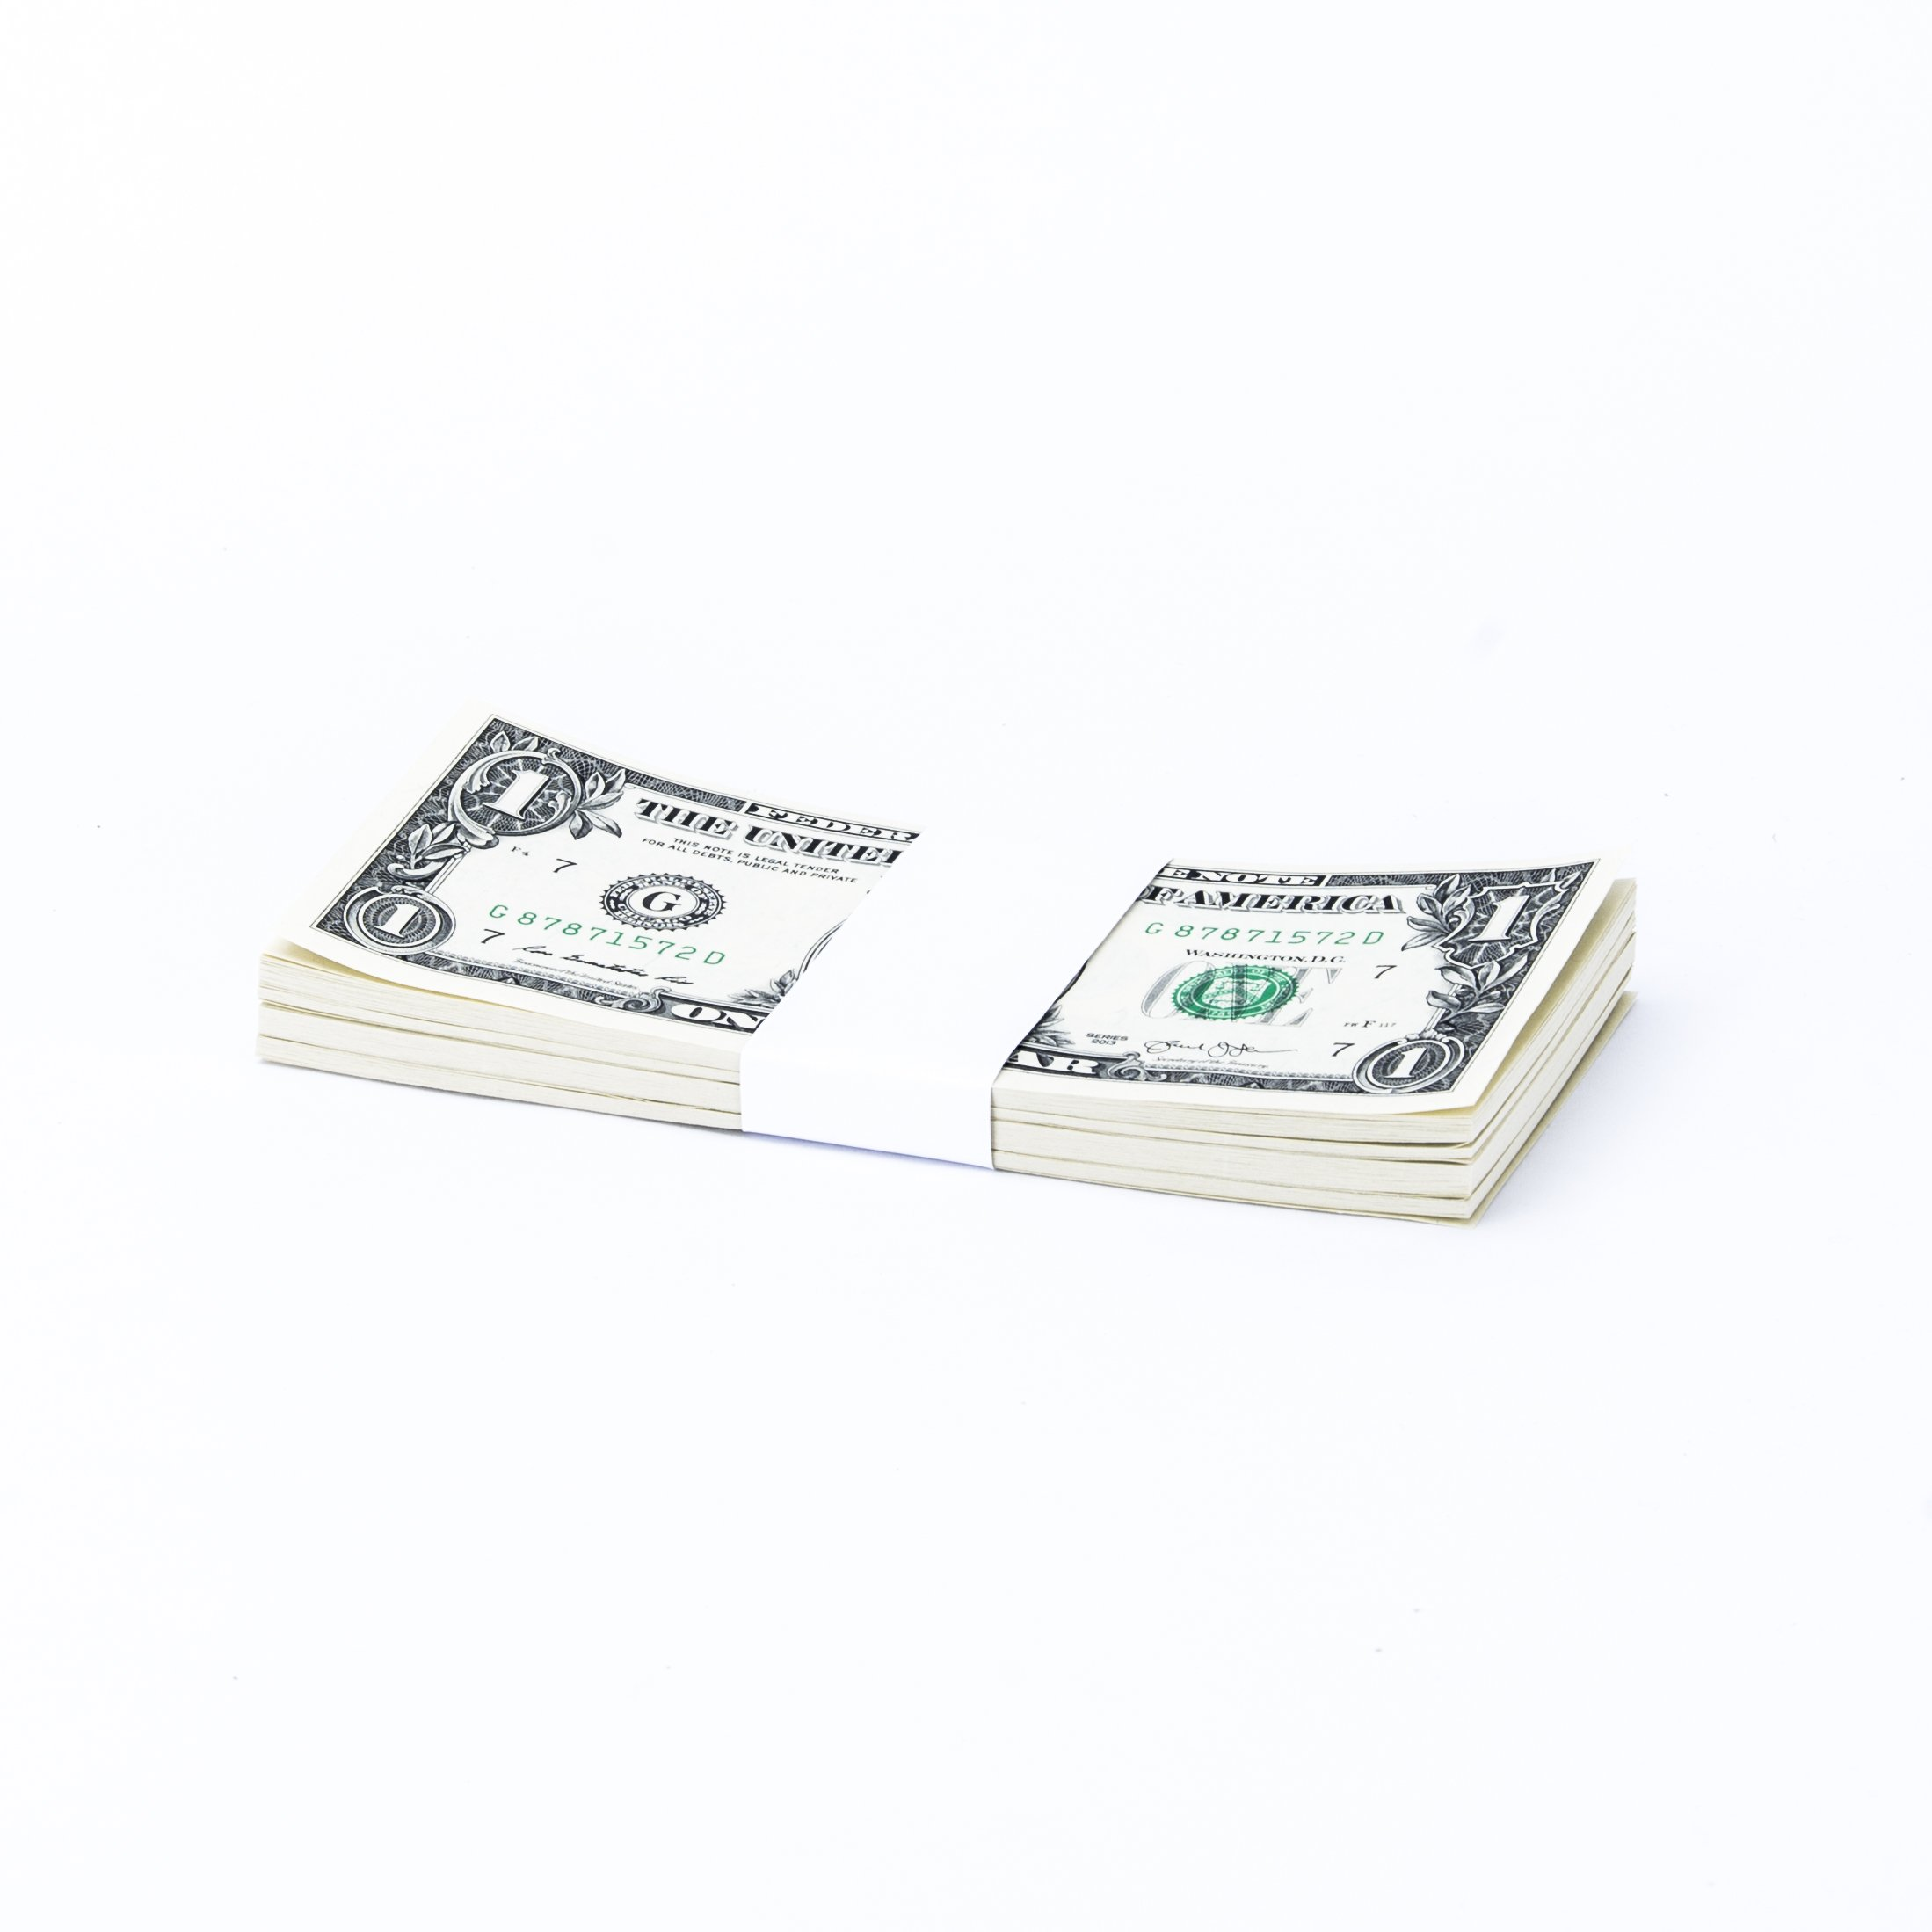 White No Denomination Currency Band Bundles (1,000 Bands) by Carousel Checks Inc.